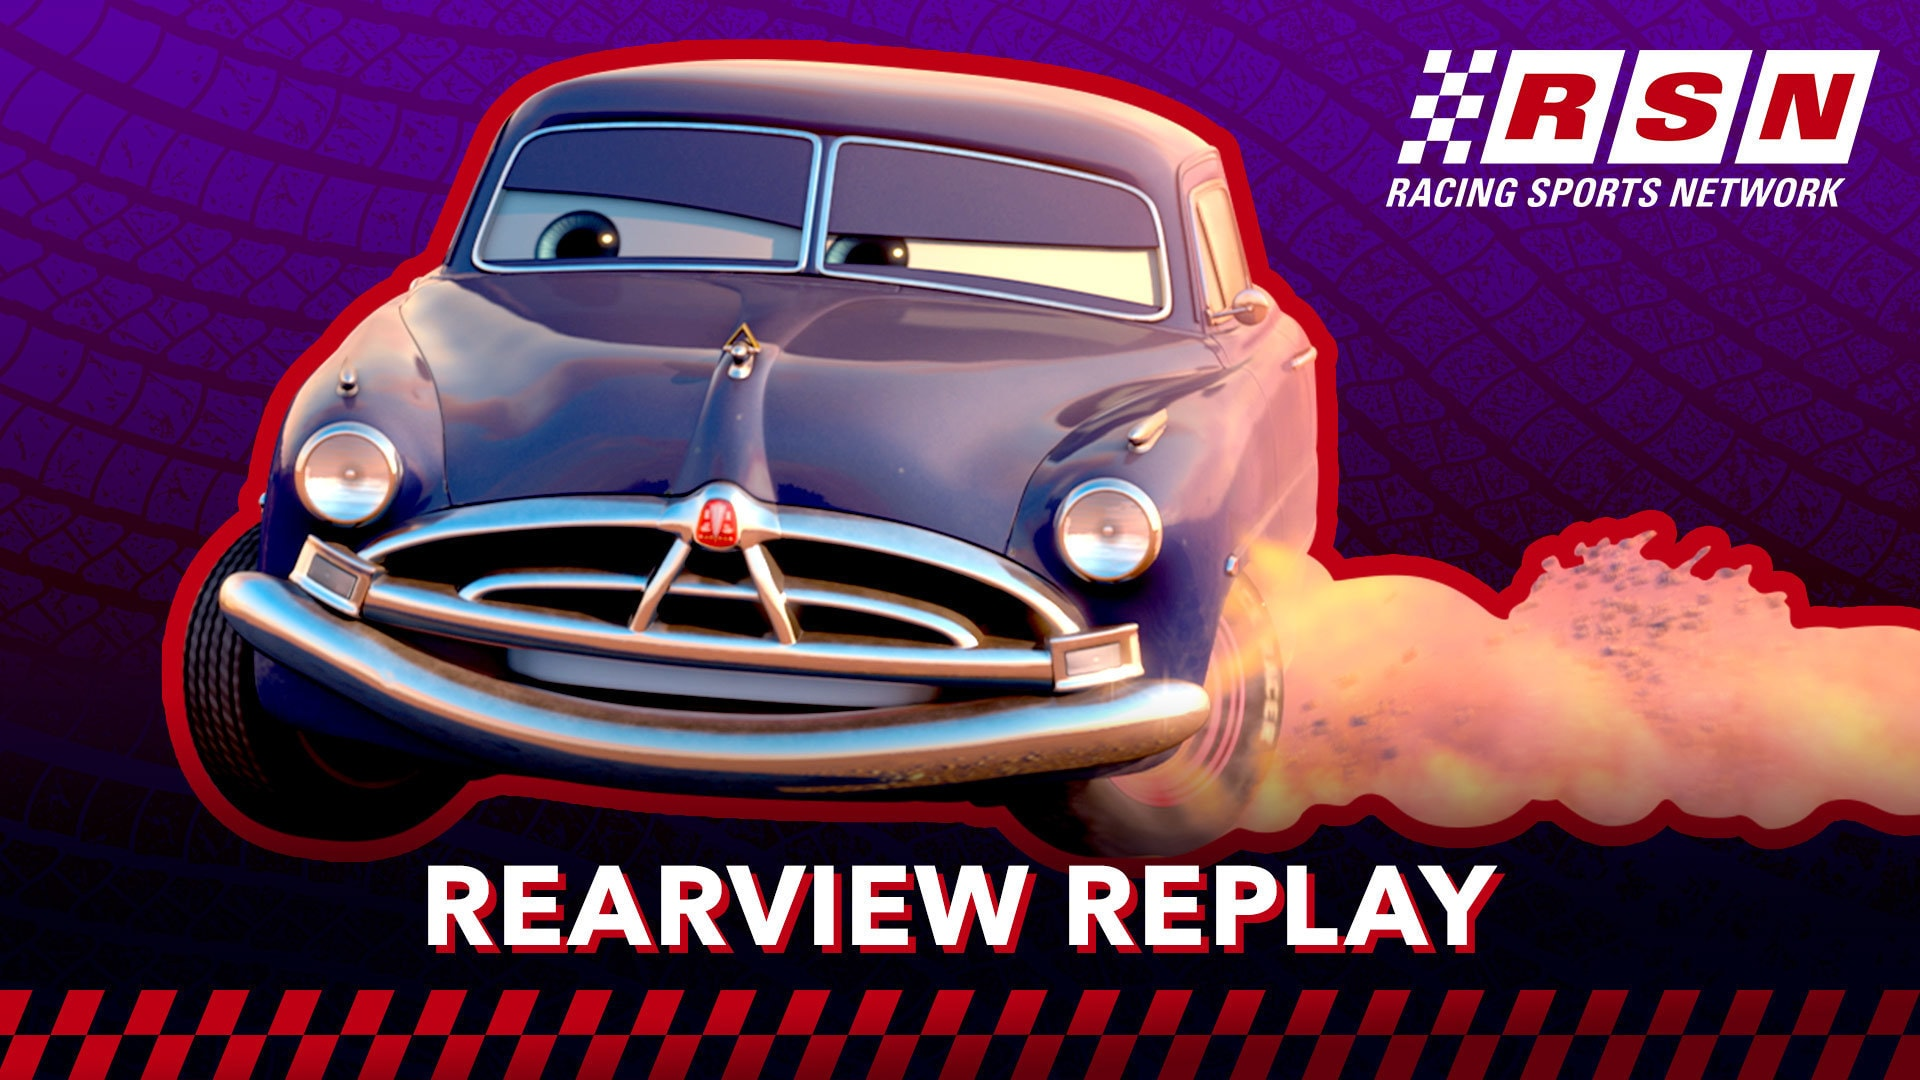 Doc Hudson Impresses Lightning McQueen in Rearview Replay | Racing Sports Network by Disney